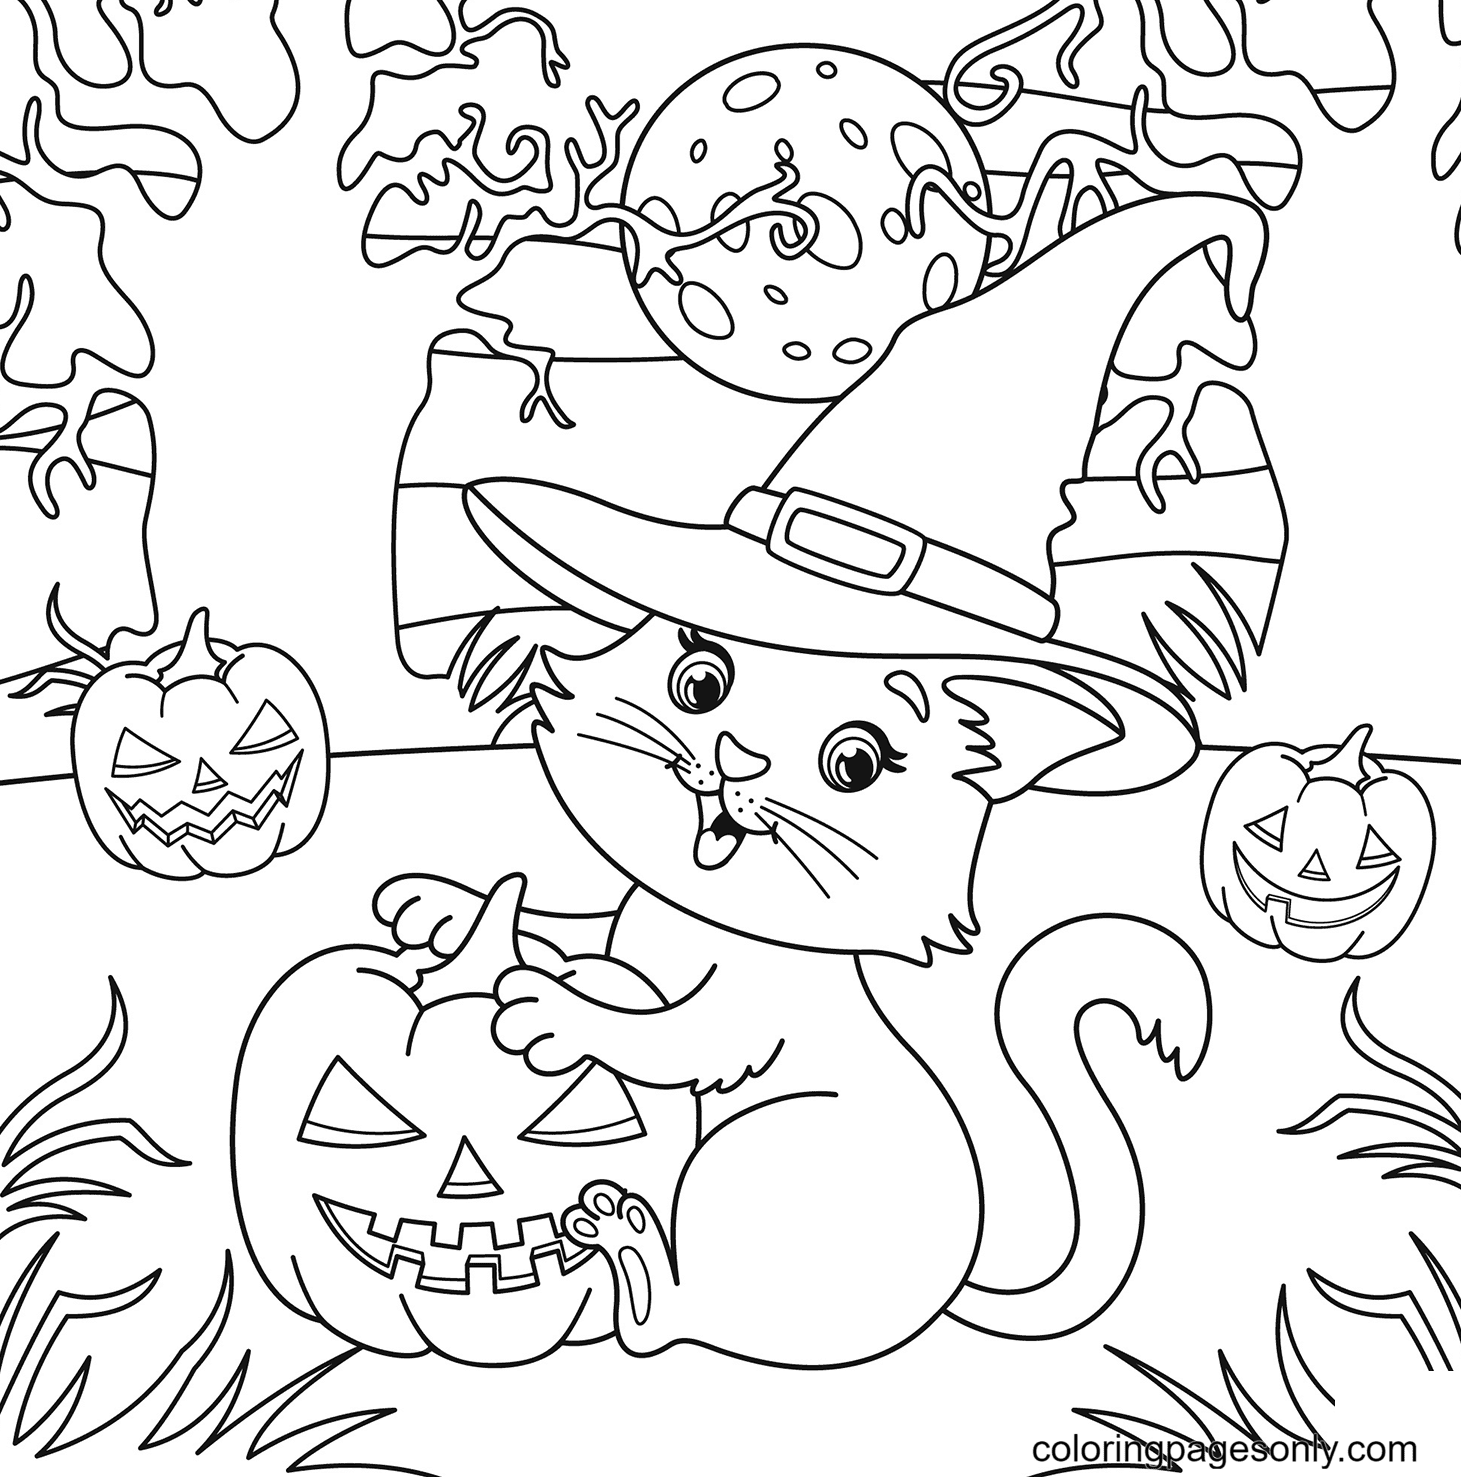 Cat in Witch Hat and Jack o' lanterns Coloring Page